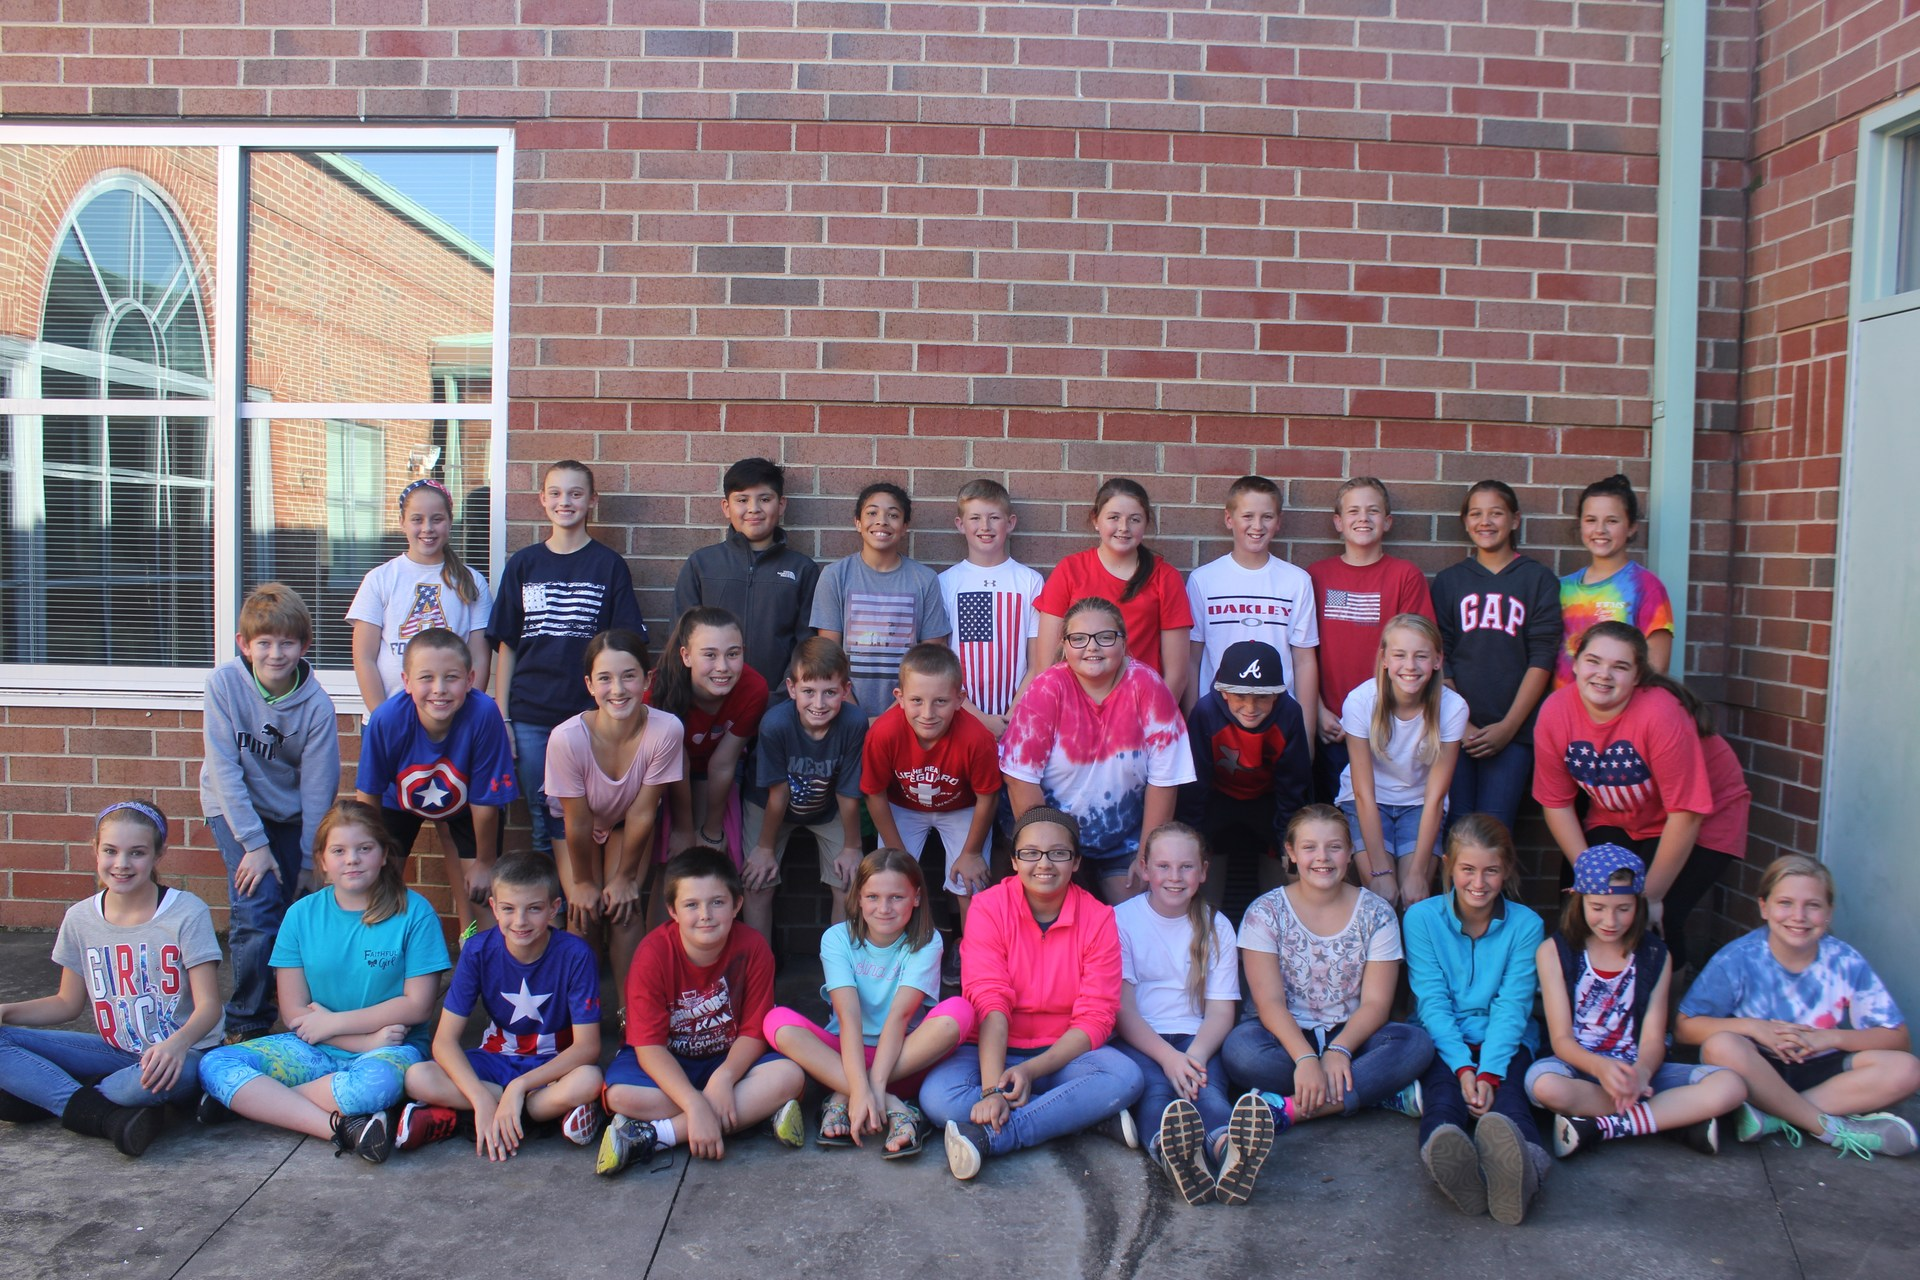 Image of 6th grade Beta Club students.